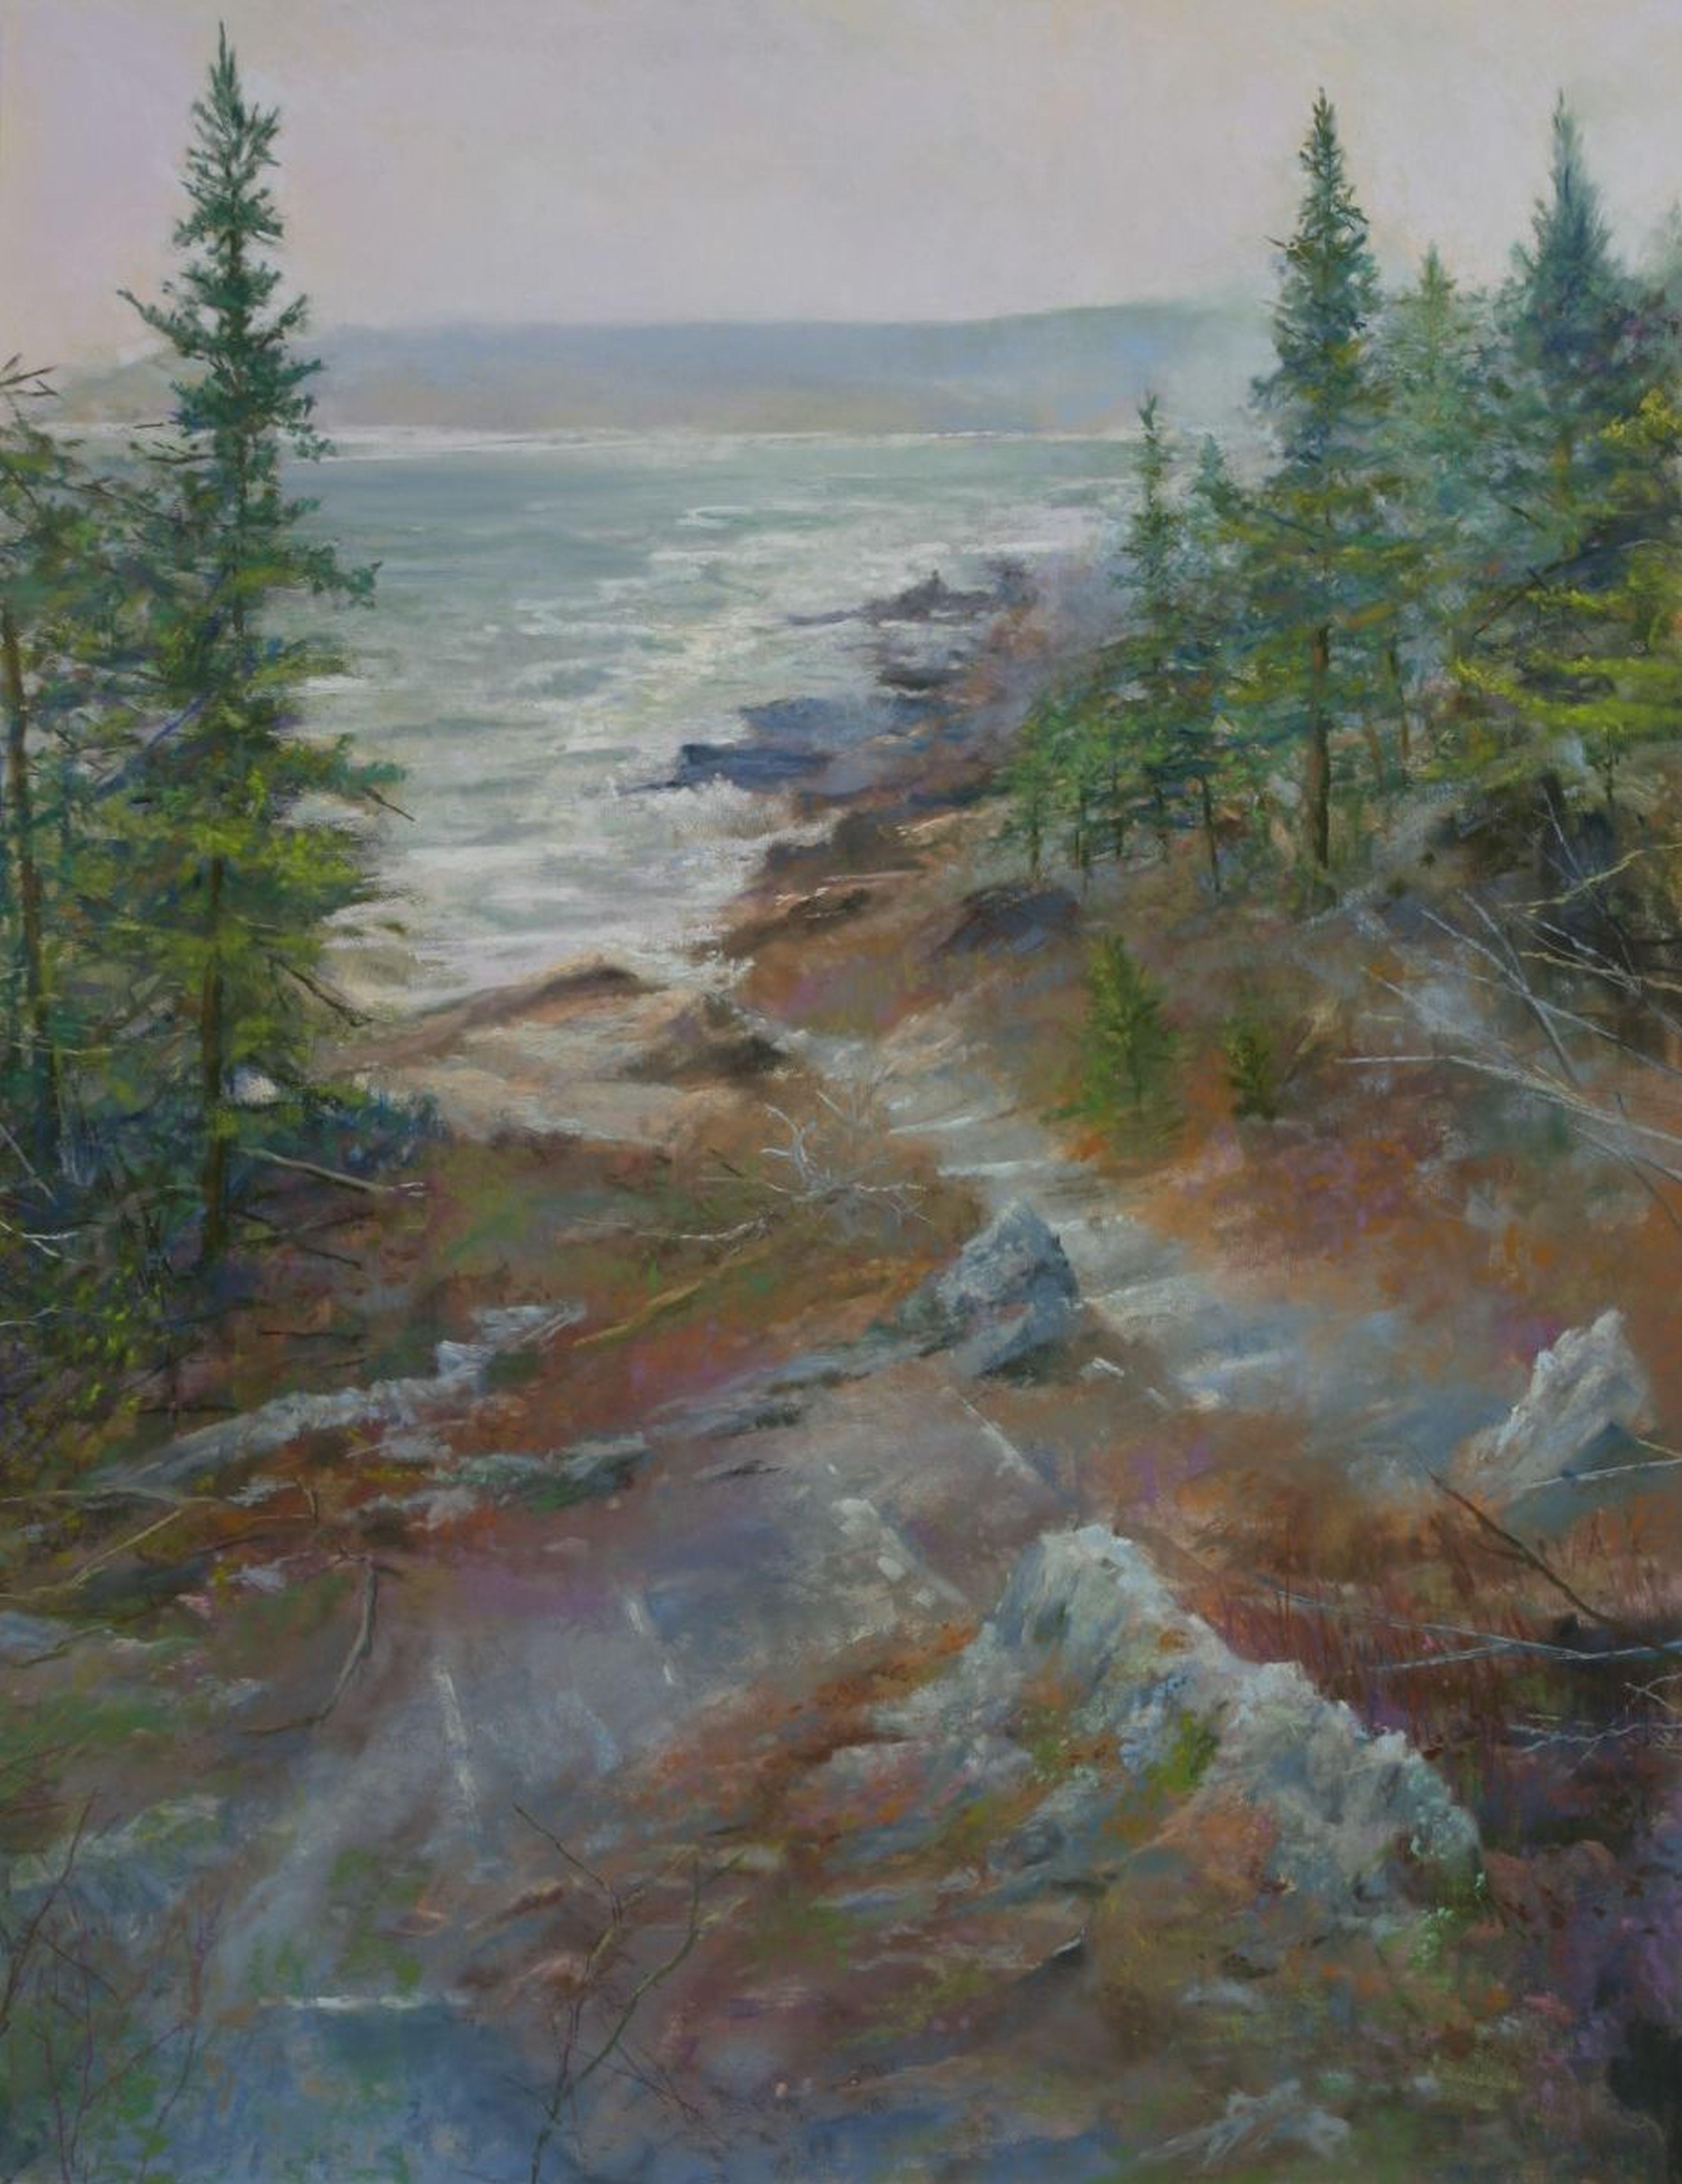 Stairway to Thunder Hole, Drawing, Pastels on Pastel Sandpaper